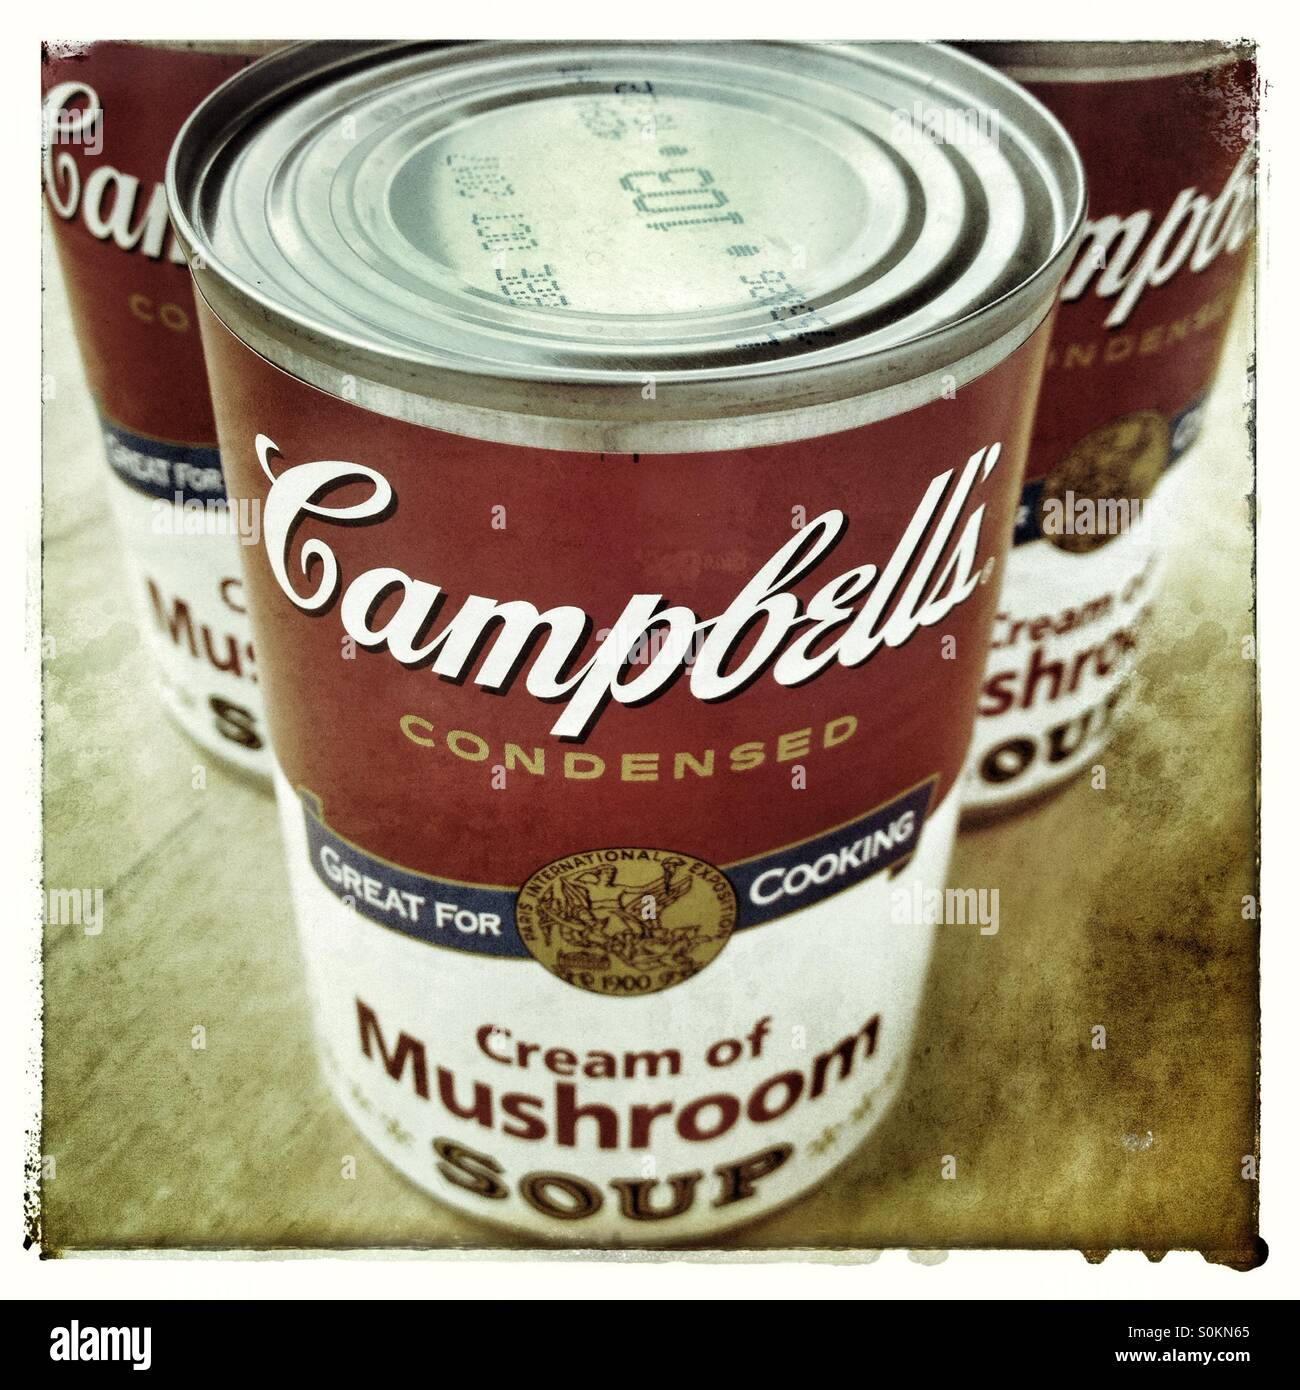 Three tins of Campbell's mushroom soup in a vintage style - Stock Image